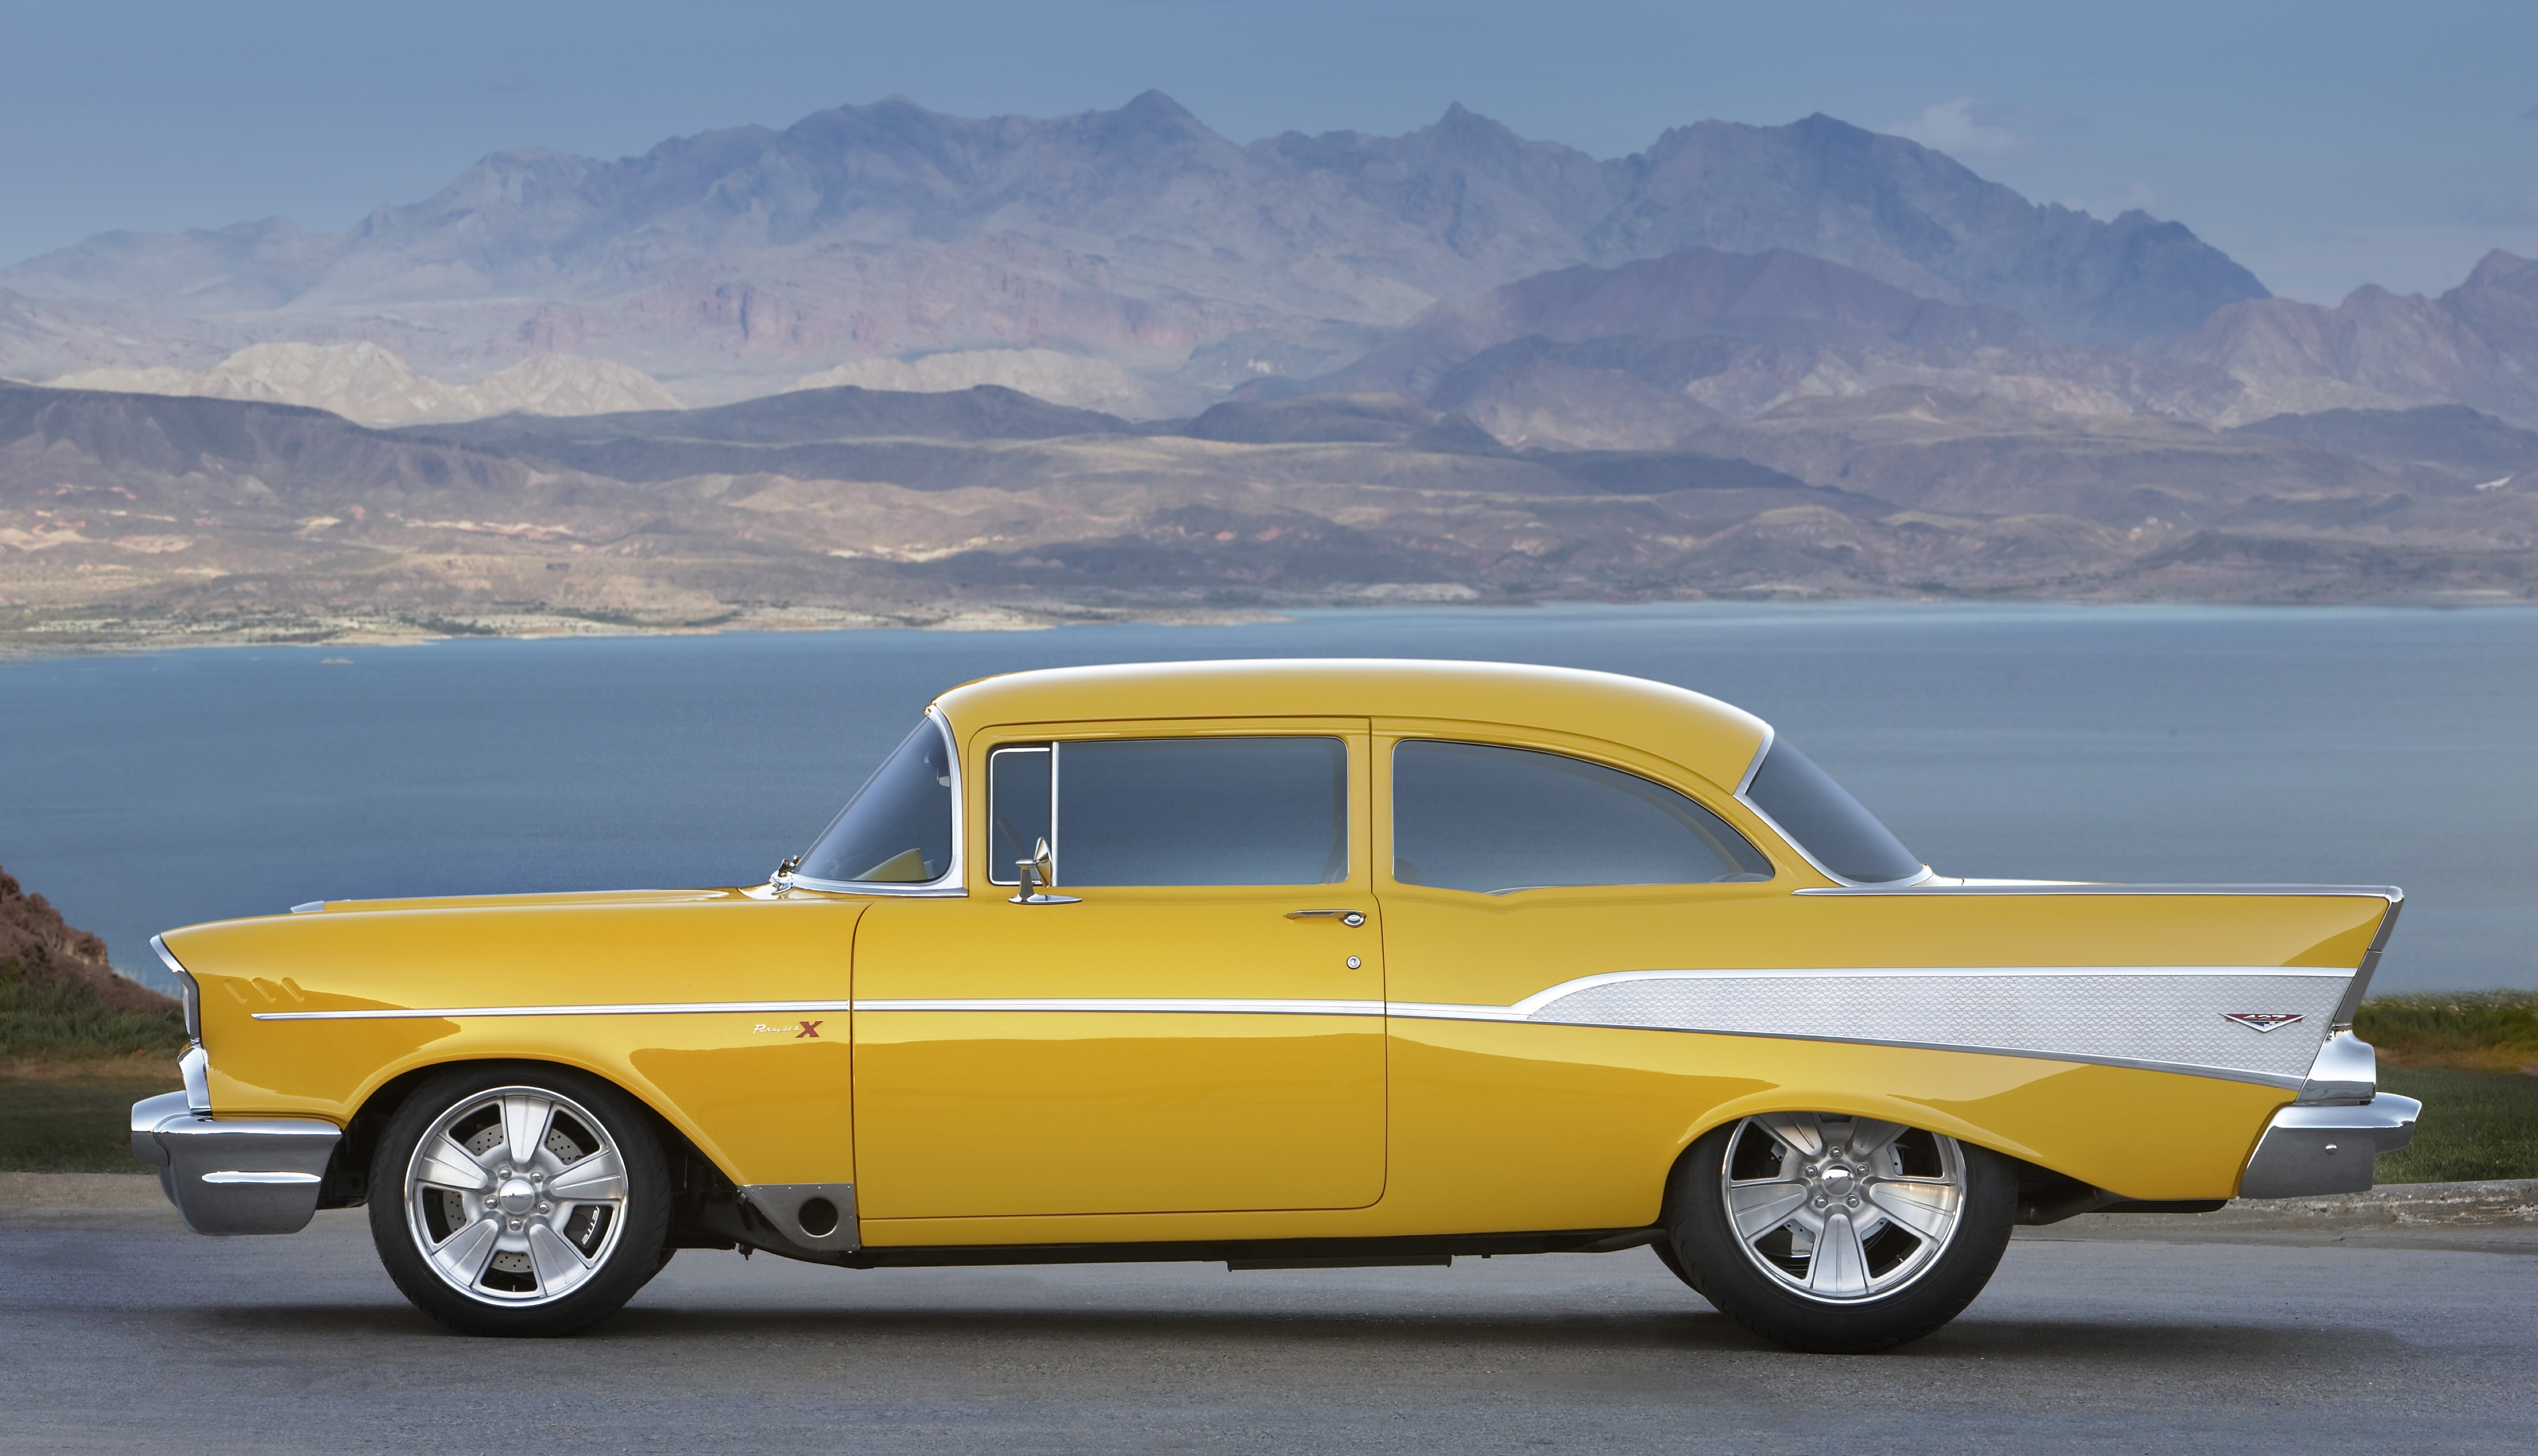 Your Ridiculously Awesome 57 Chevy Bel Air Wallpaper Is Here